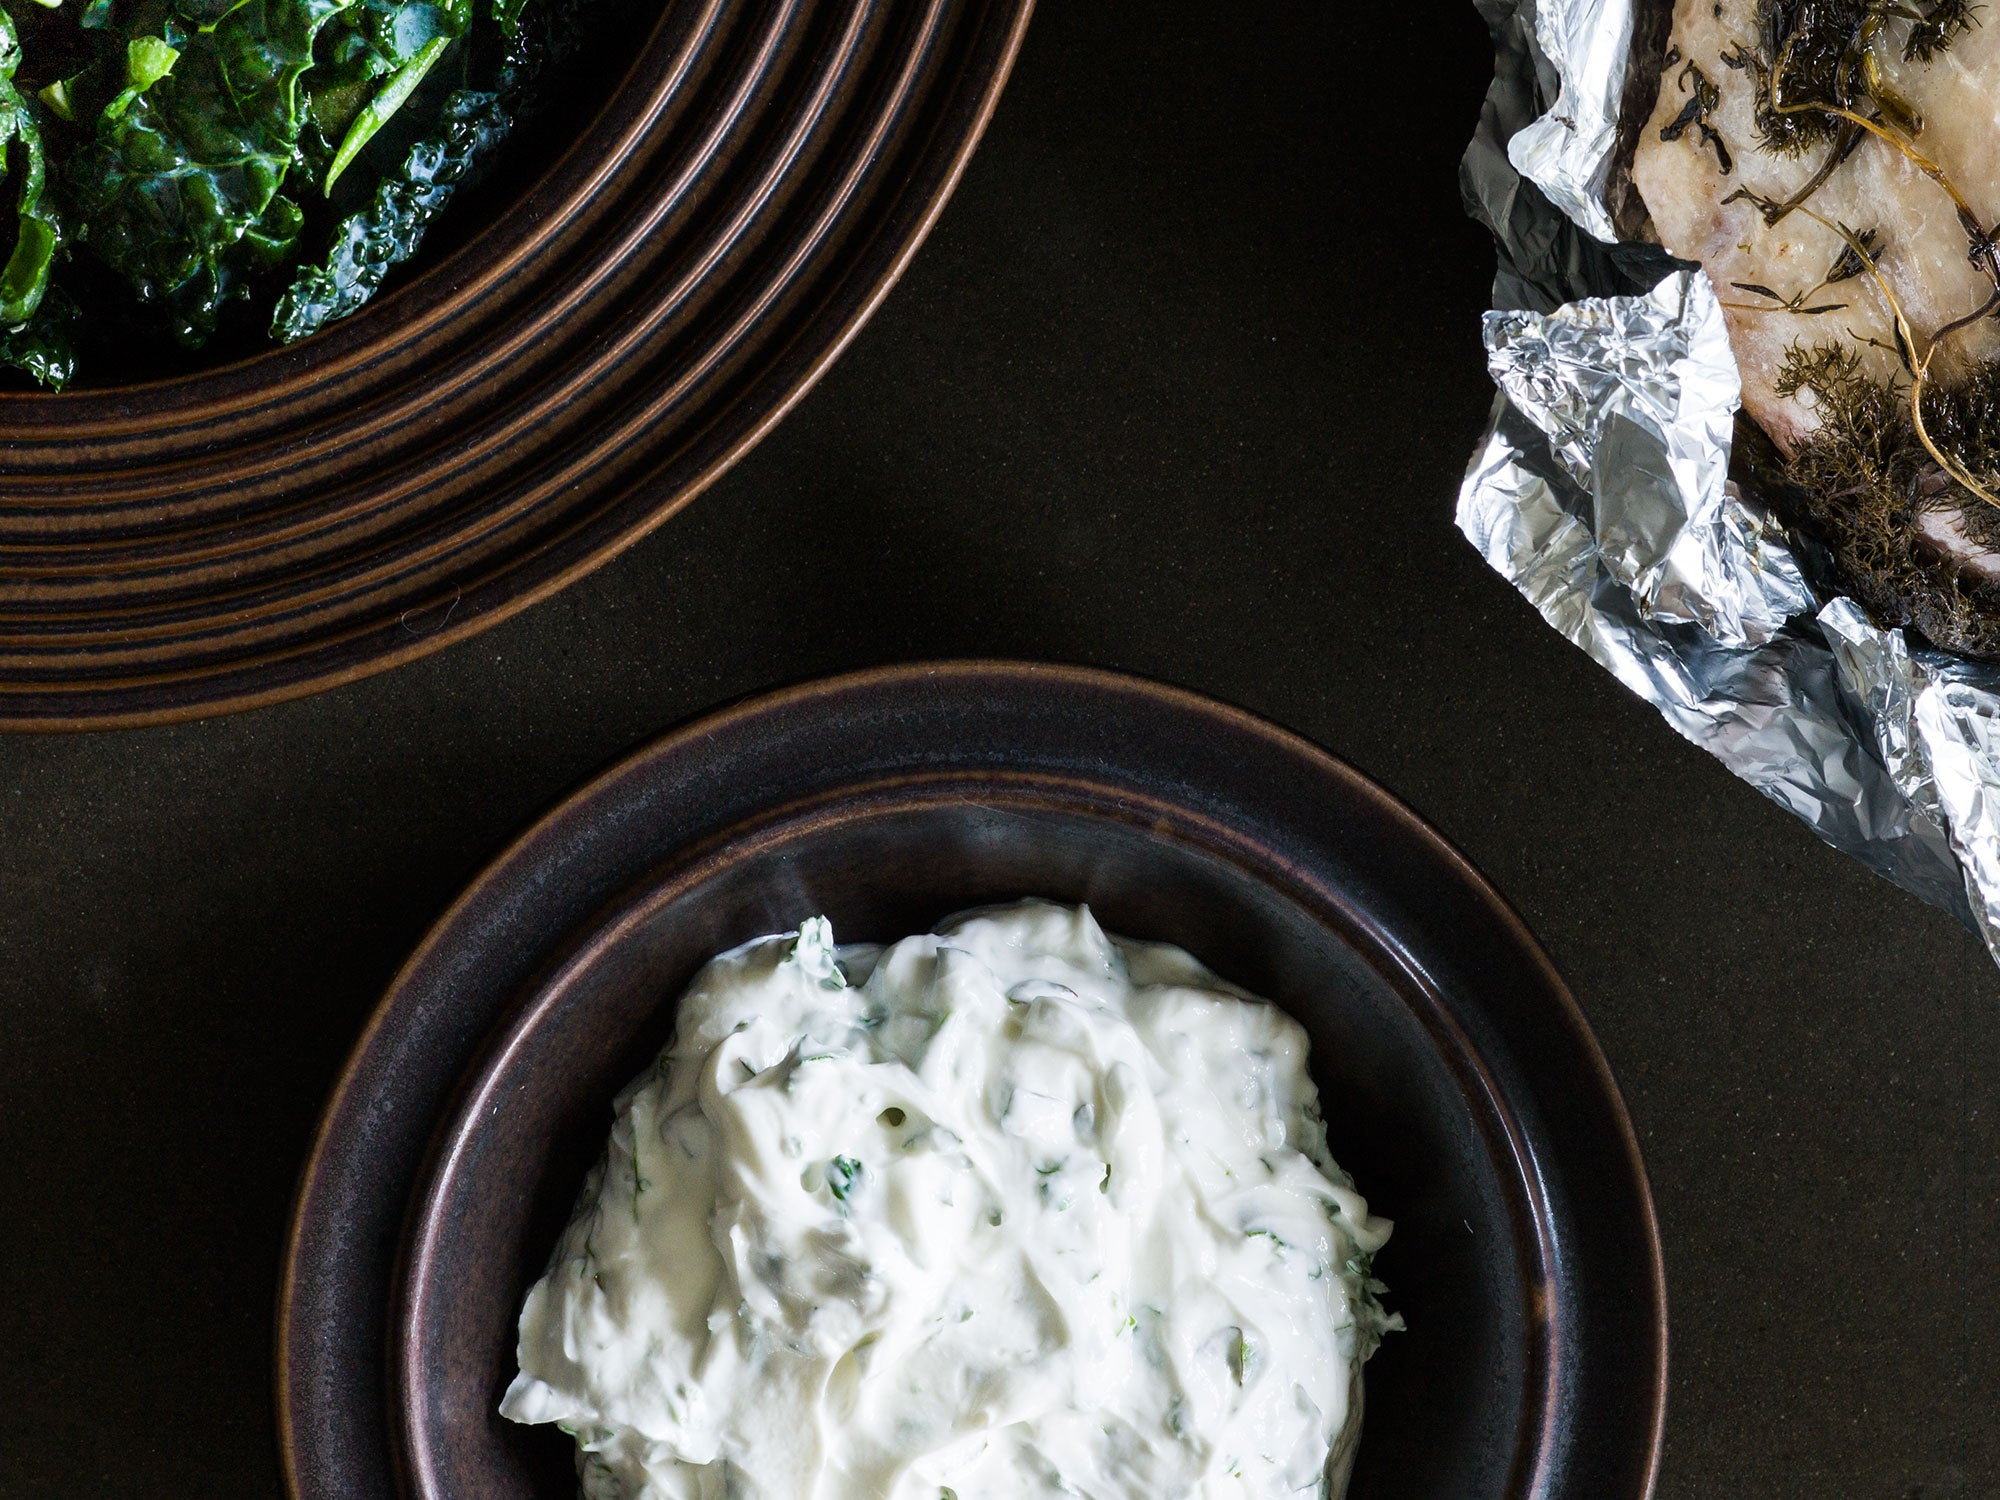 Sweden, recipe, Magnus Nilsson, skyr, cheese, parsley, dill